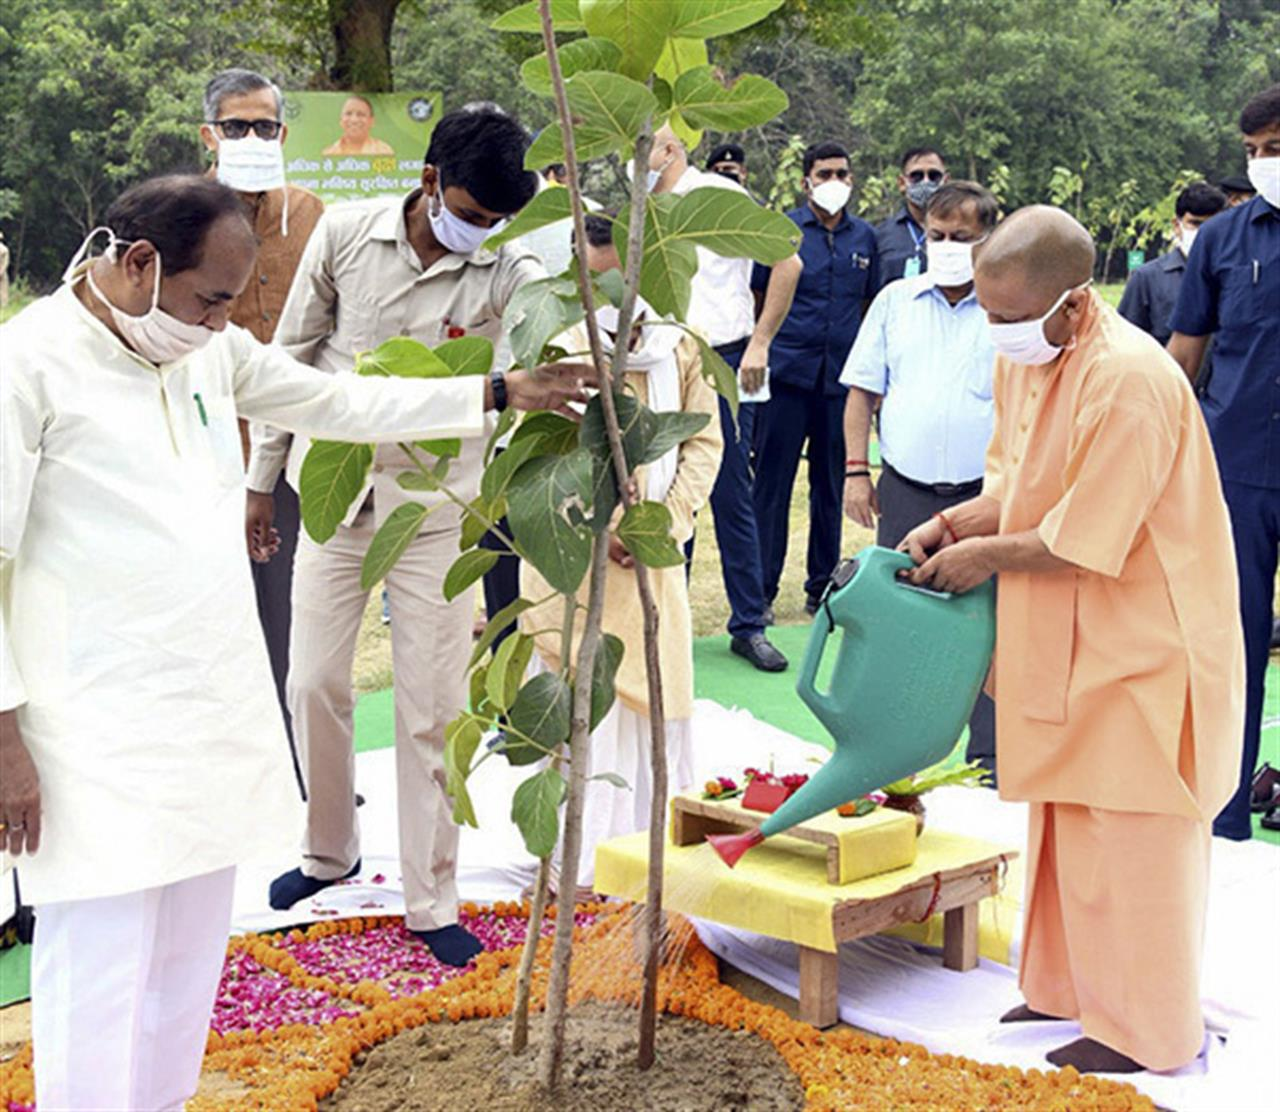 Indians keep their distance in mass tree planting campaign